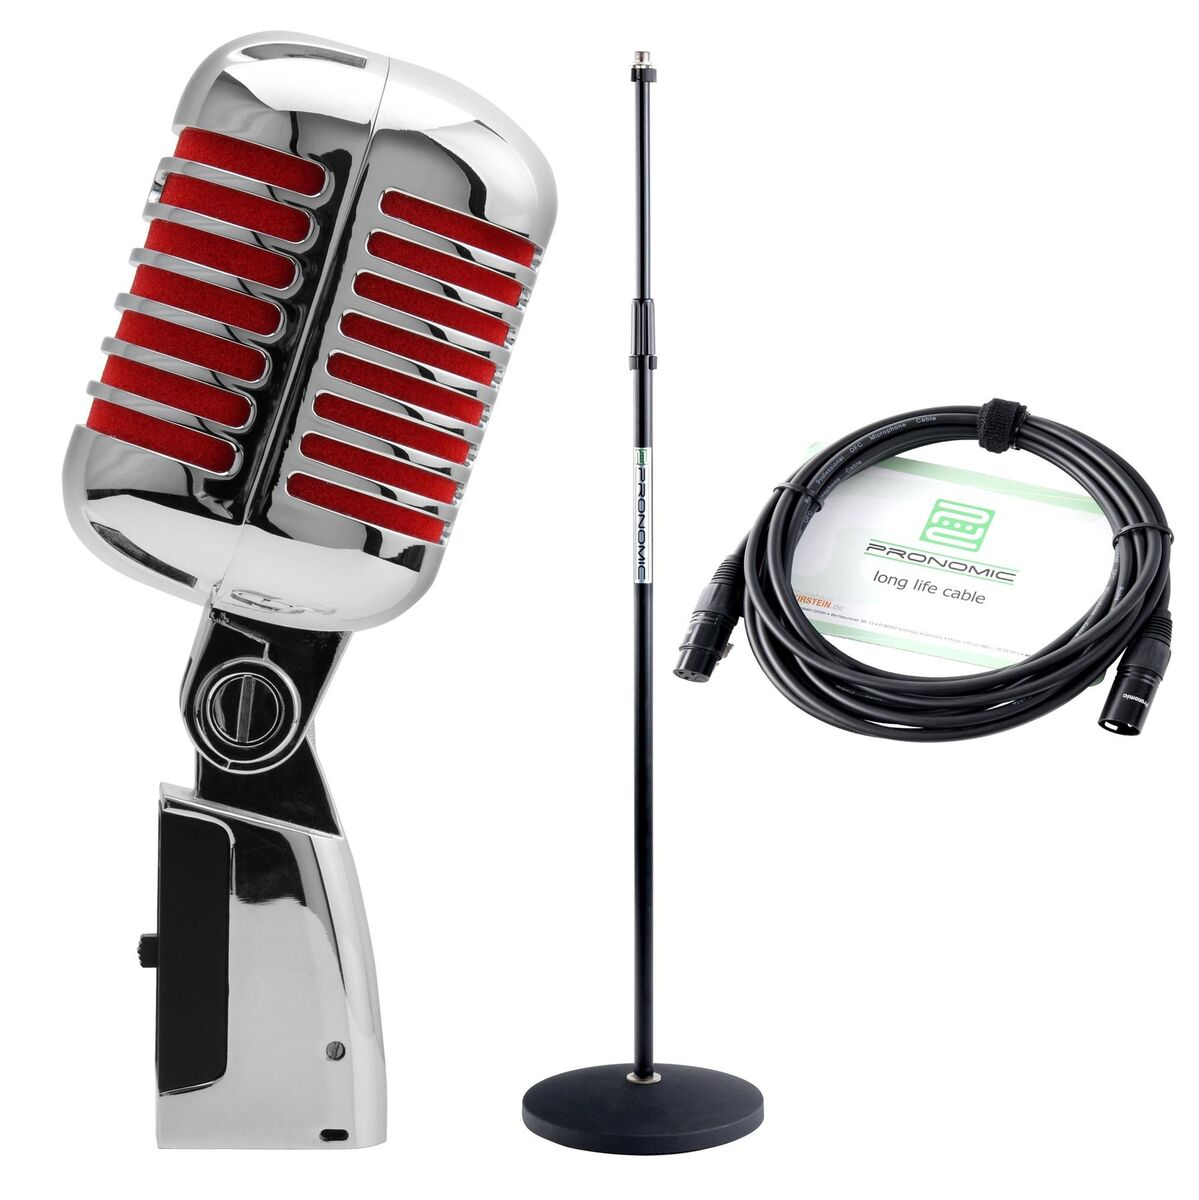 Microfono dinamico elvis rock n roll rockabilly dj pa r tro mic set suppoto cavo 